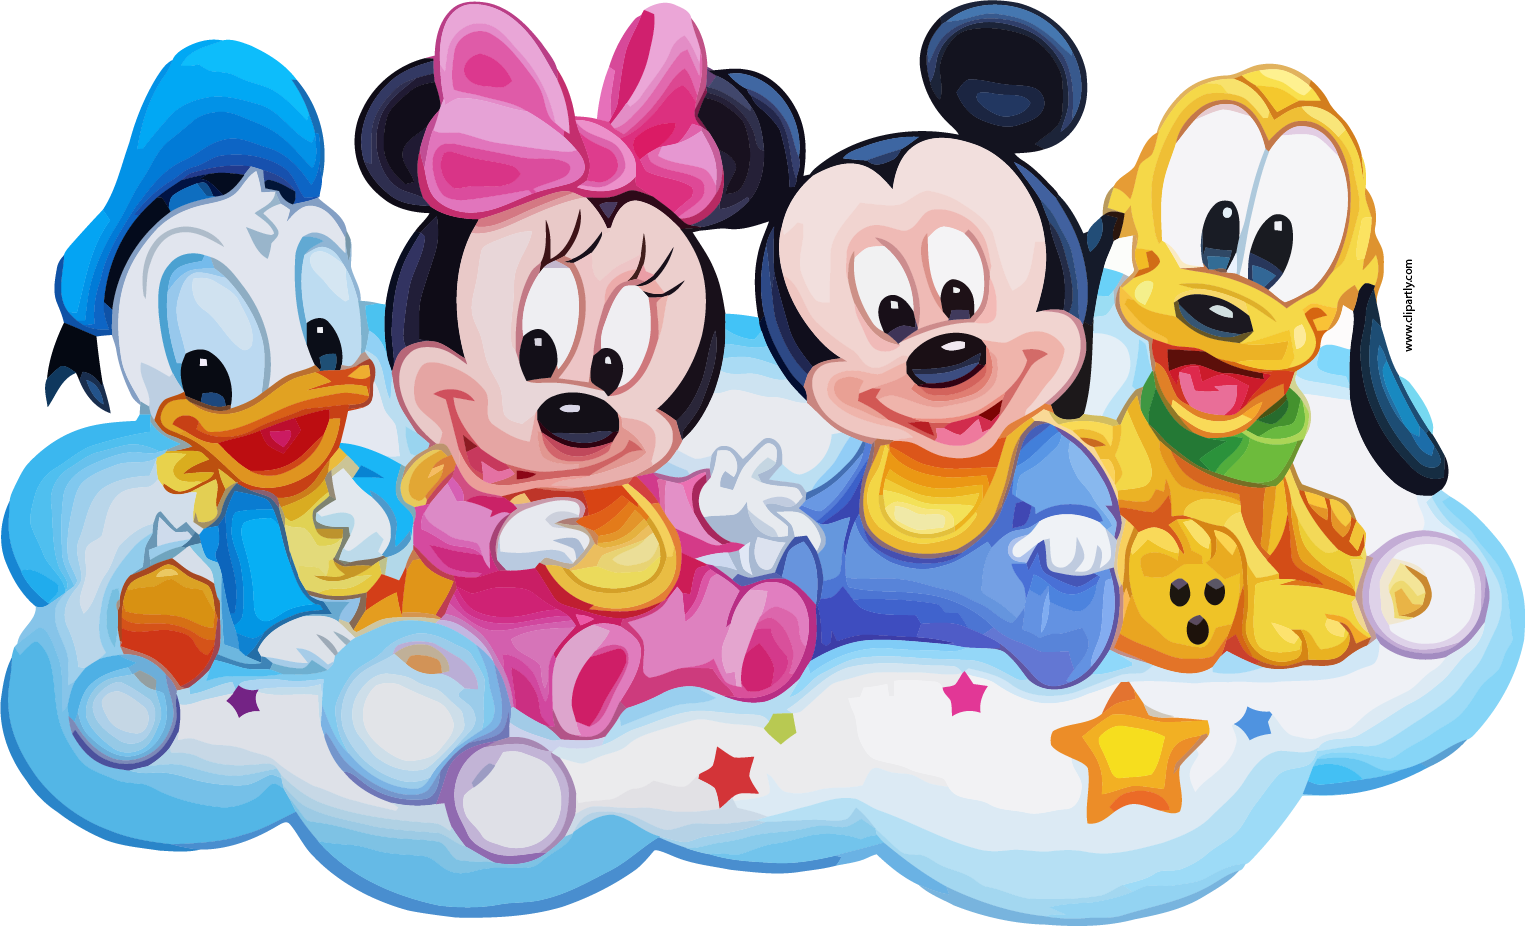 Telephone clipart friend. Mickey friends on cloud